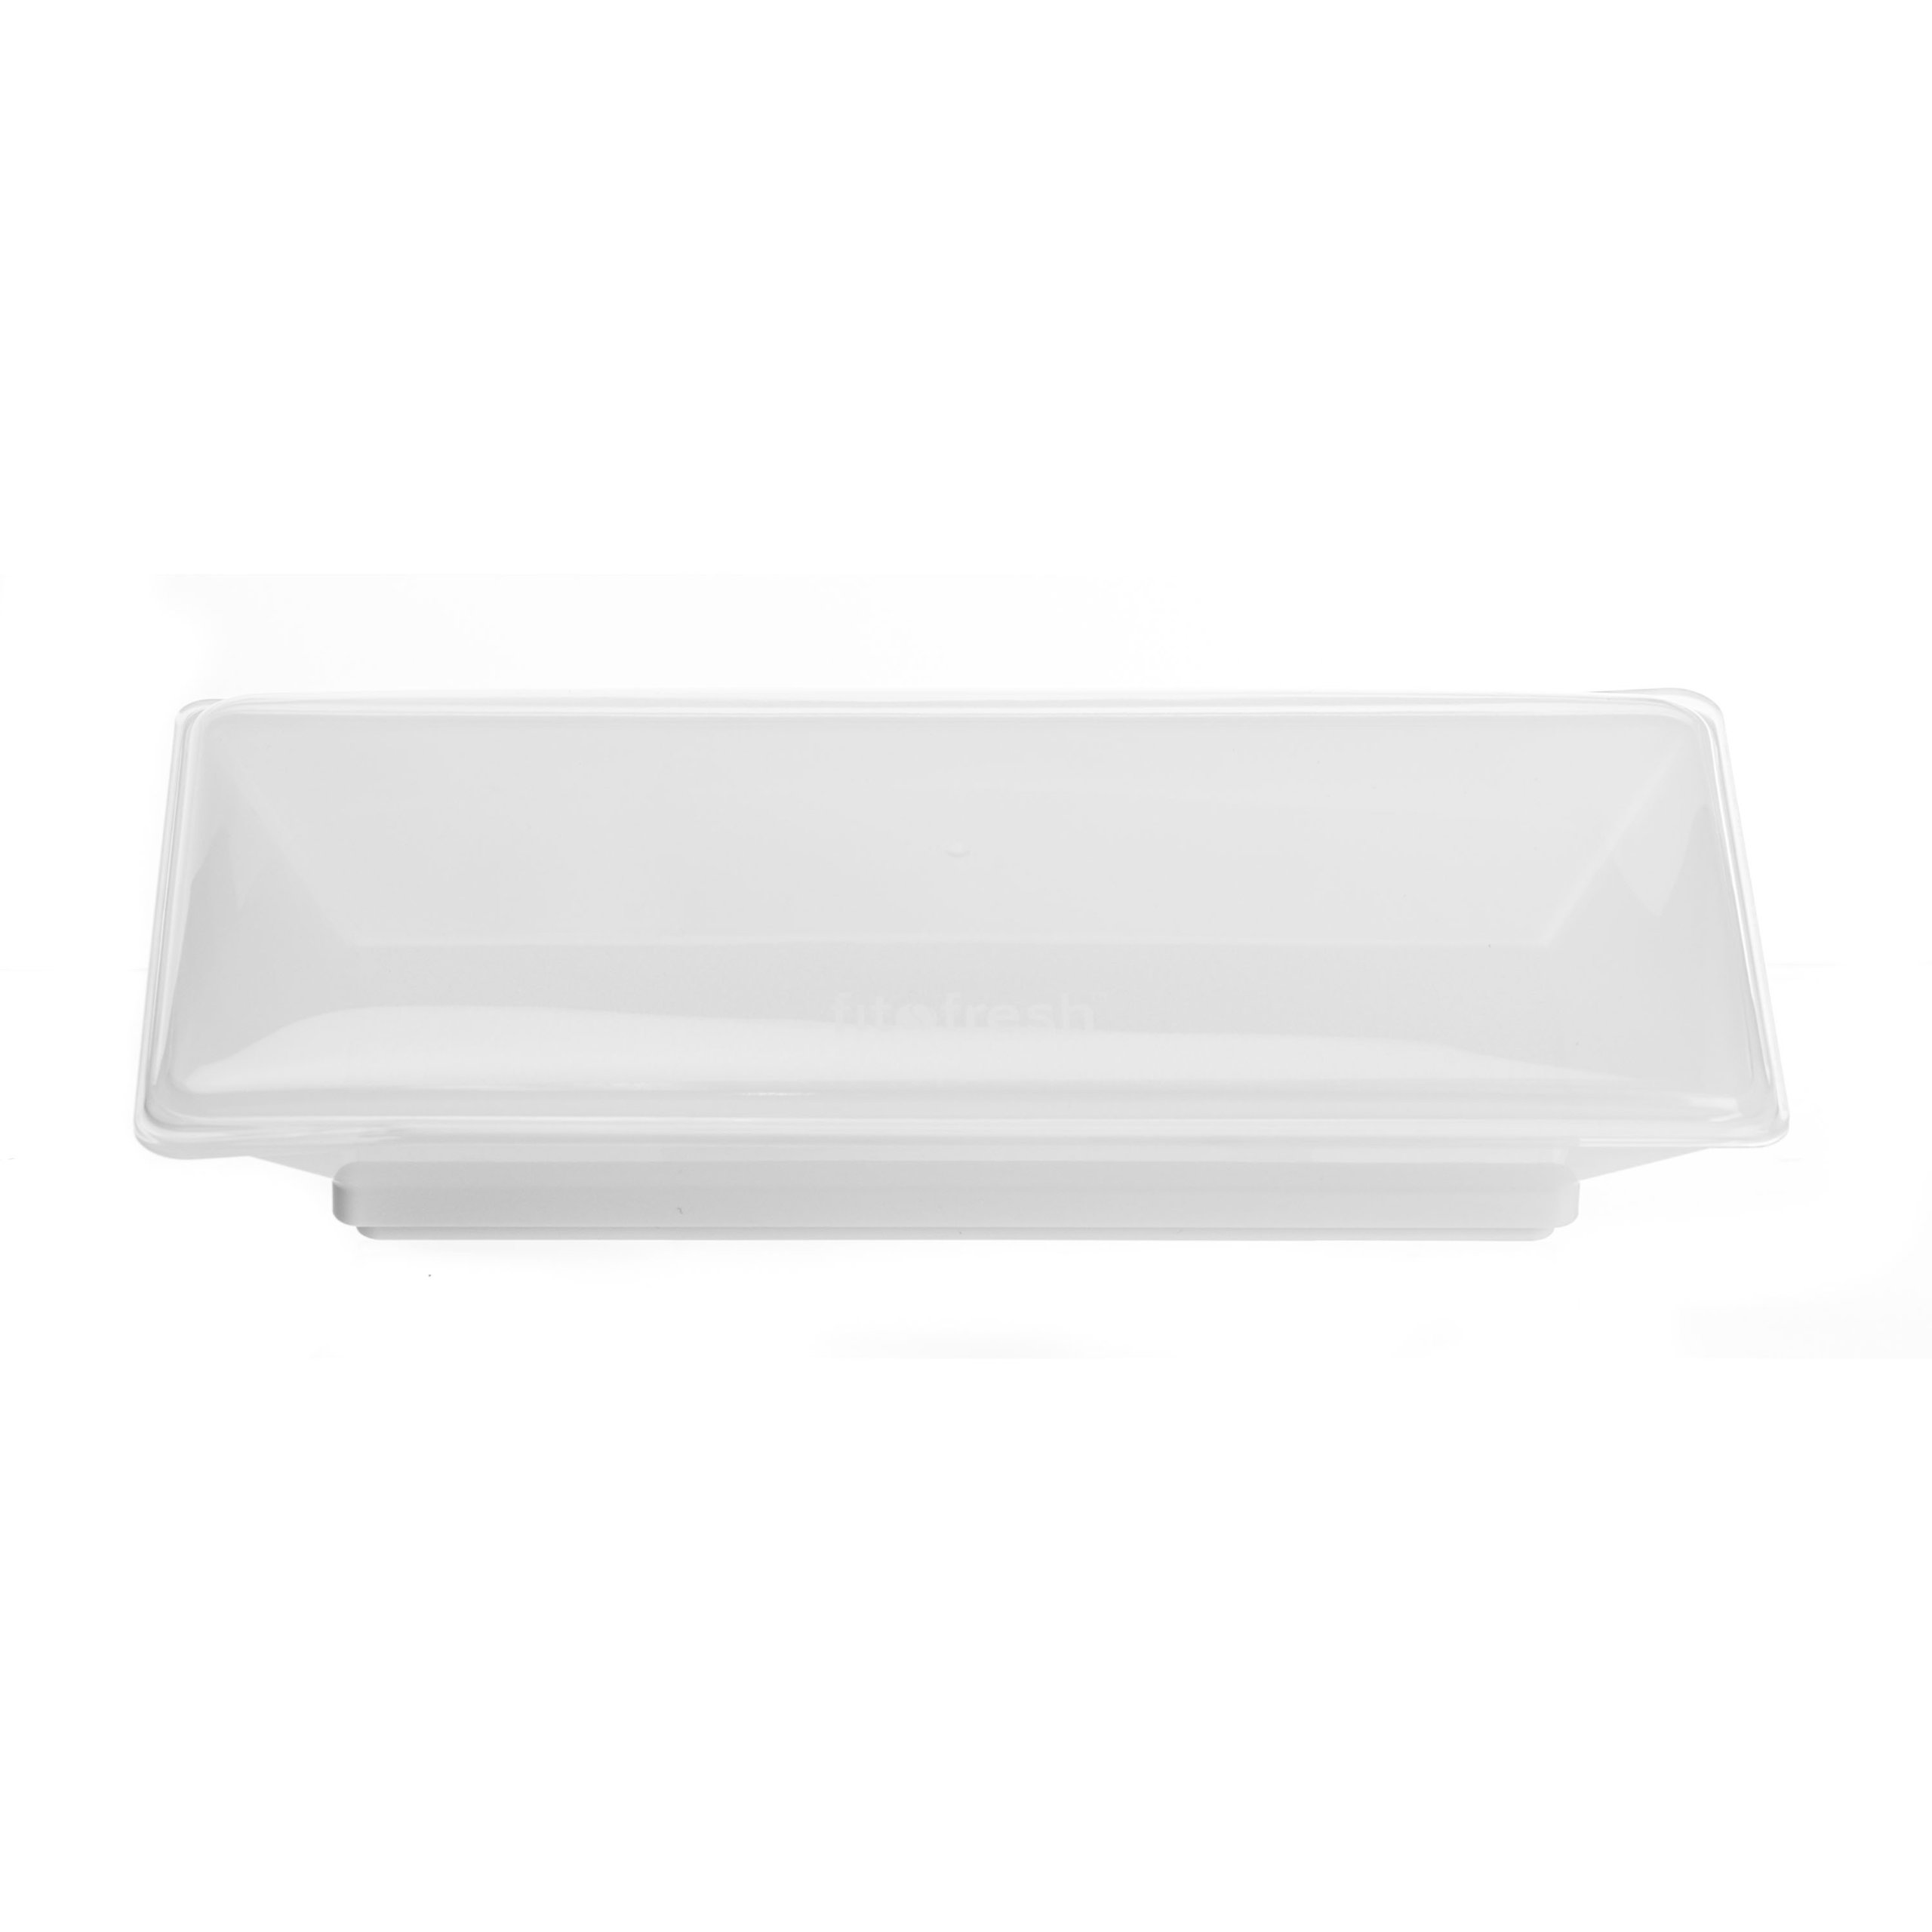 Fit & Fresh Chilled Serving Platter, 56-ounce Capacity Freezable Food Tray with Lid , BPA-Free, Freezer/Microwave Safe, Perfect for Party, Gathering, Food Storage by Fit & Fresh (Image #2)